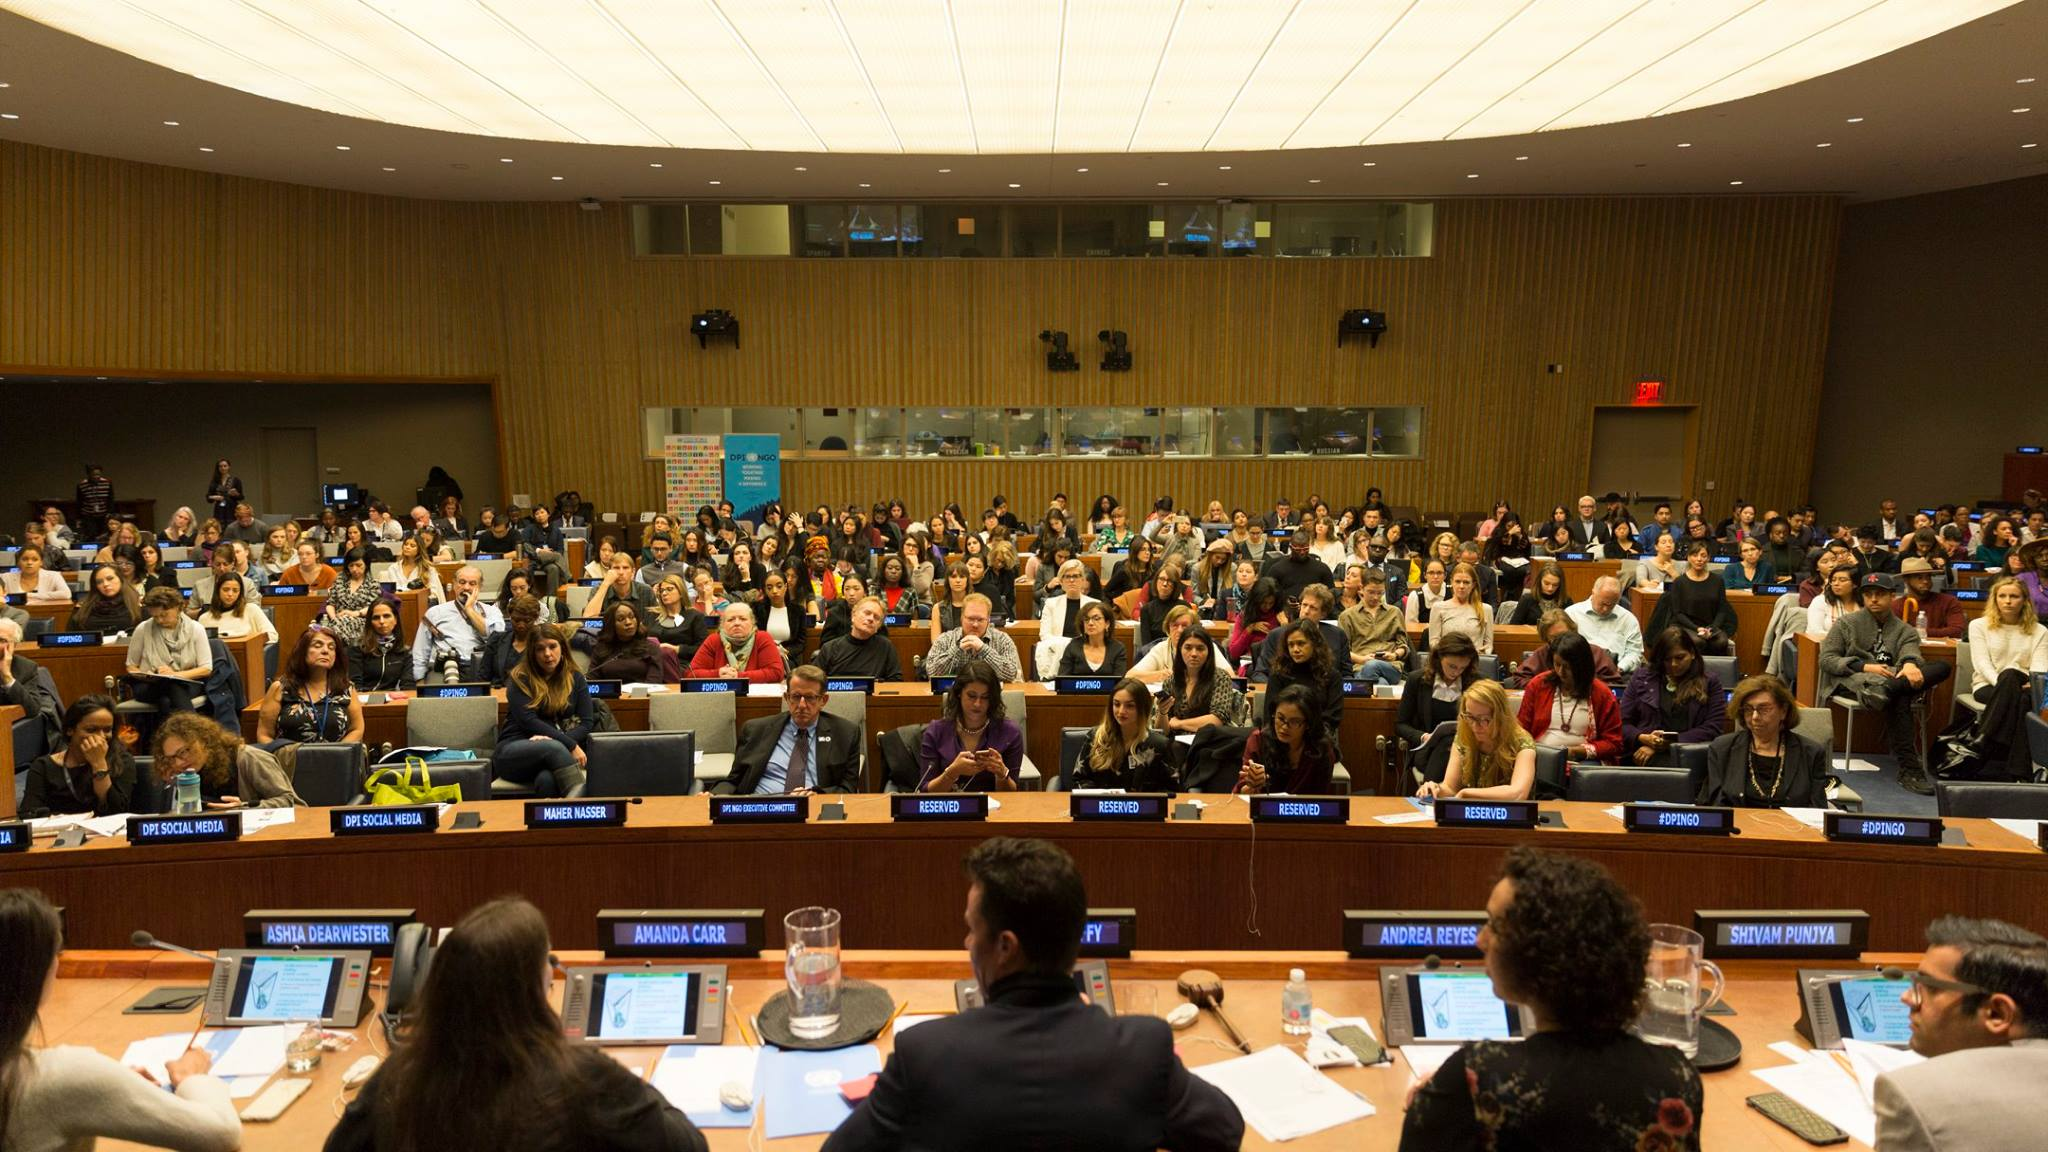 More than 700 guests gathered at the United Nations, New York City